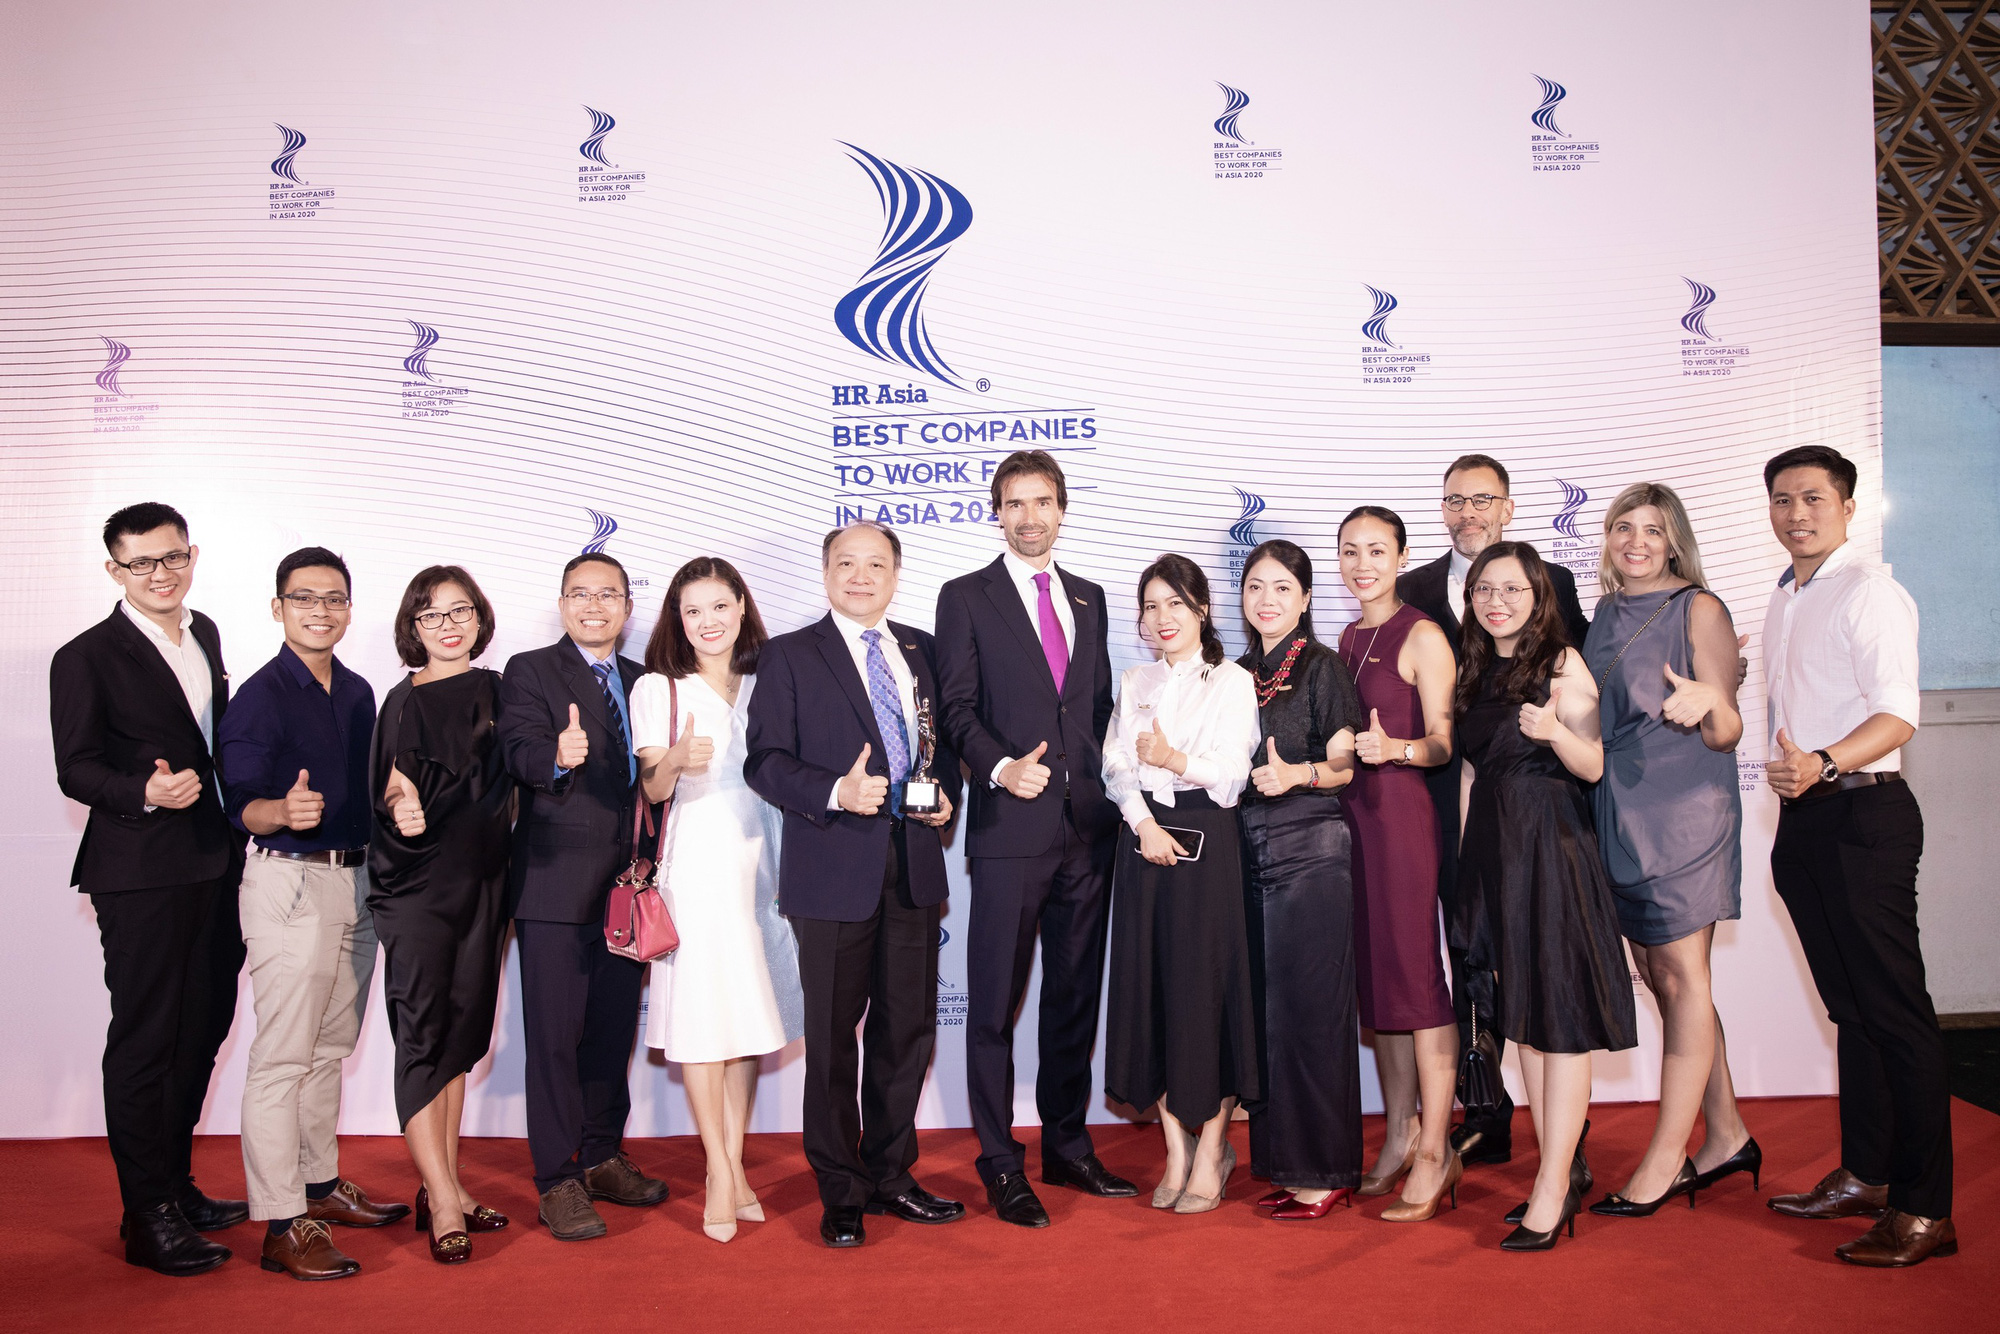 HEINEKEN Vietnam leaders and employees pose for a photo at the Best Companies to Work For in Asia award ceremony in Ho Chi Minh City, July 1, 2020.